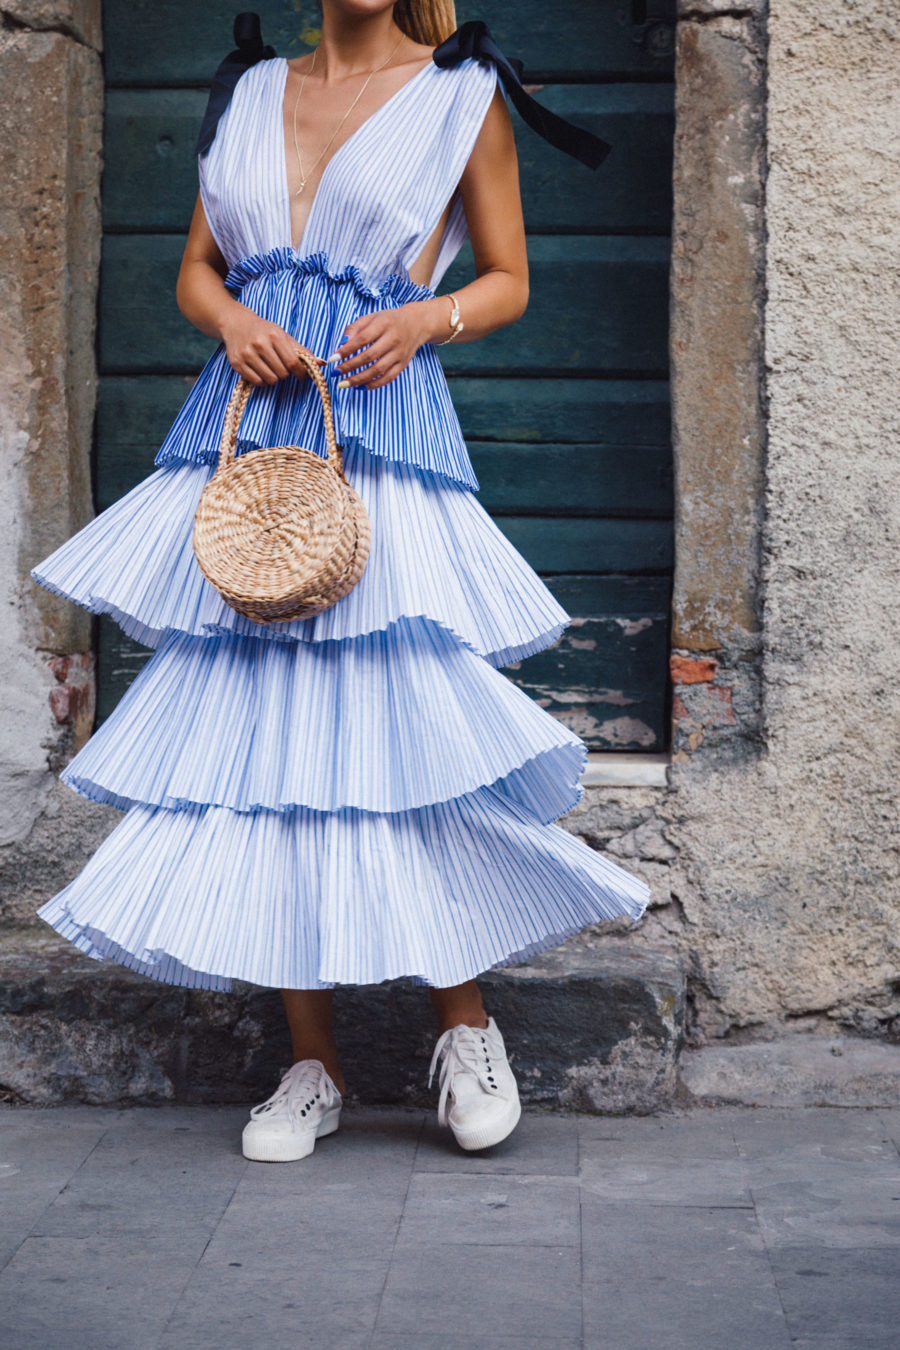 Ruffle Tiered Dresses // NotJessFashion.com